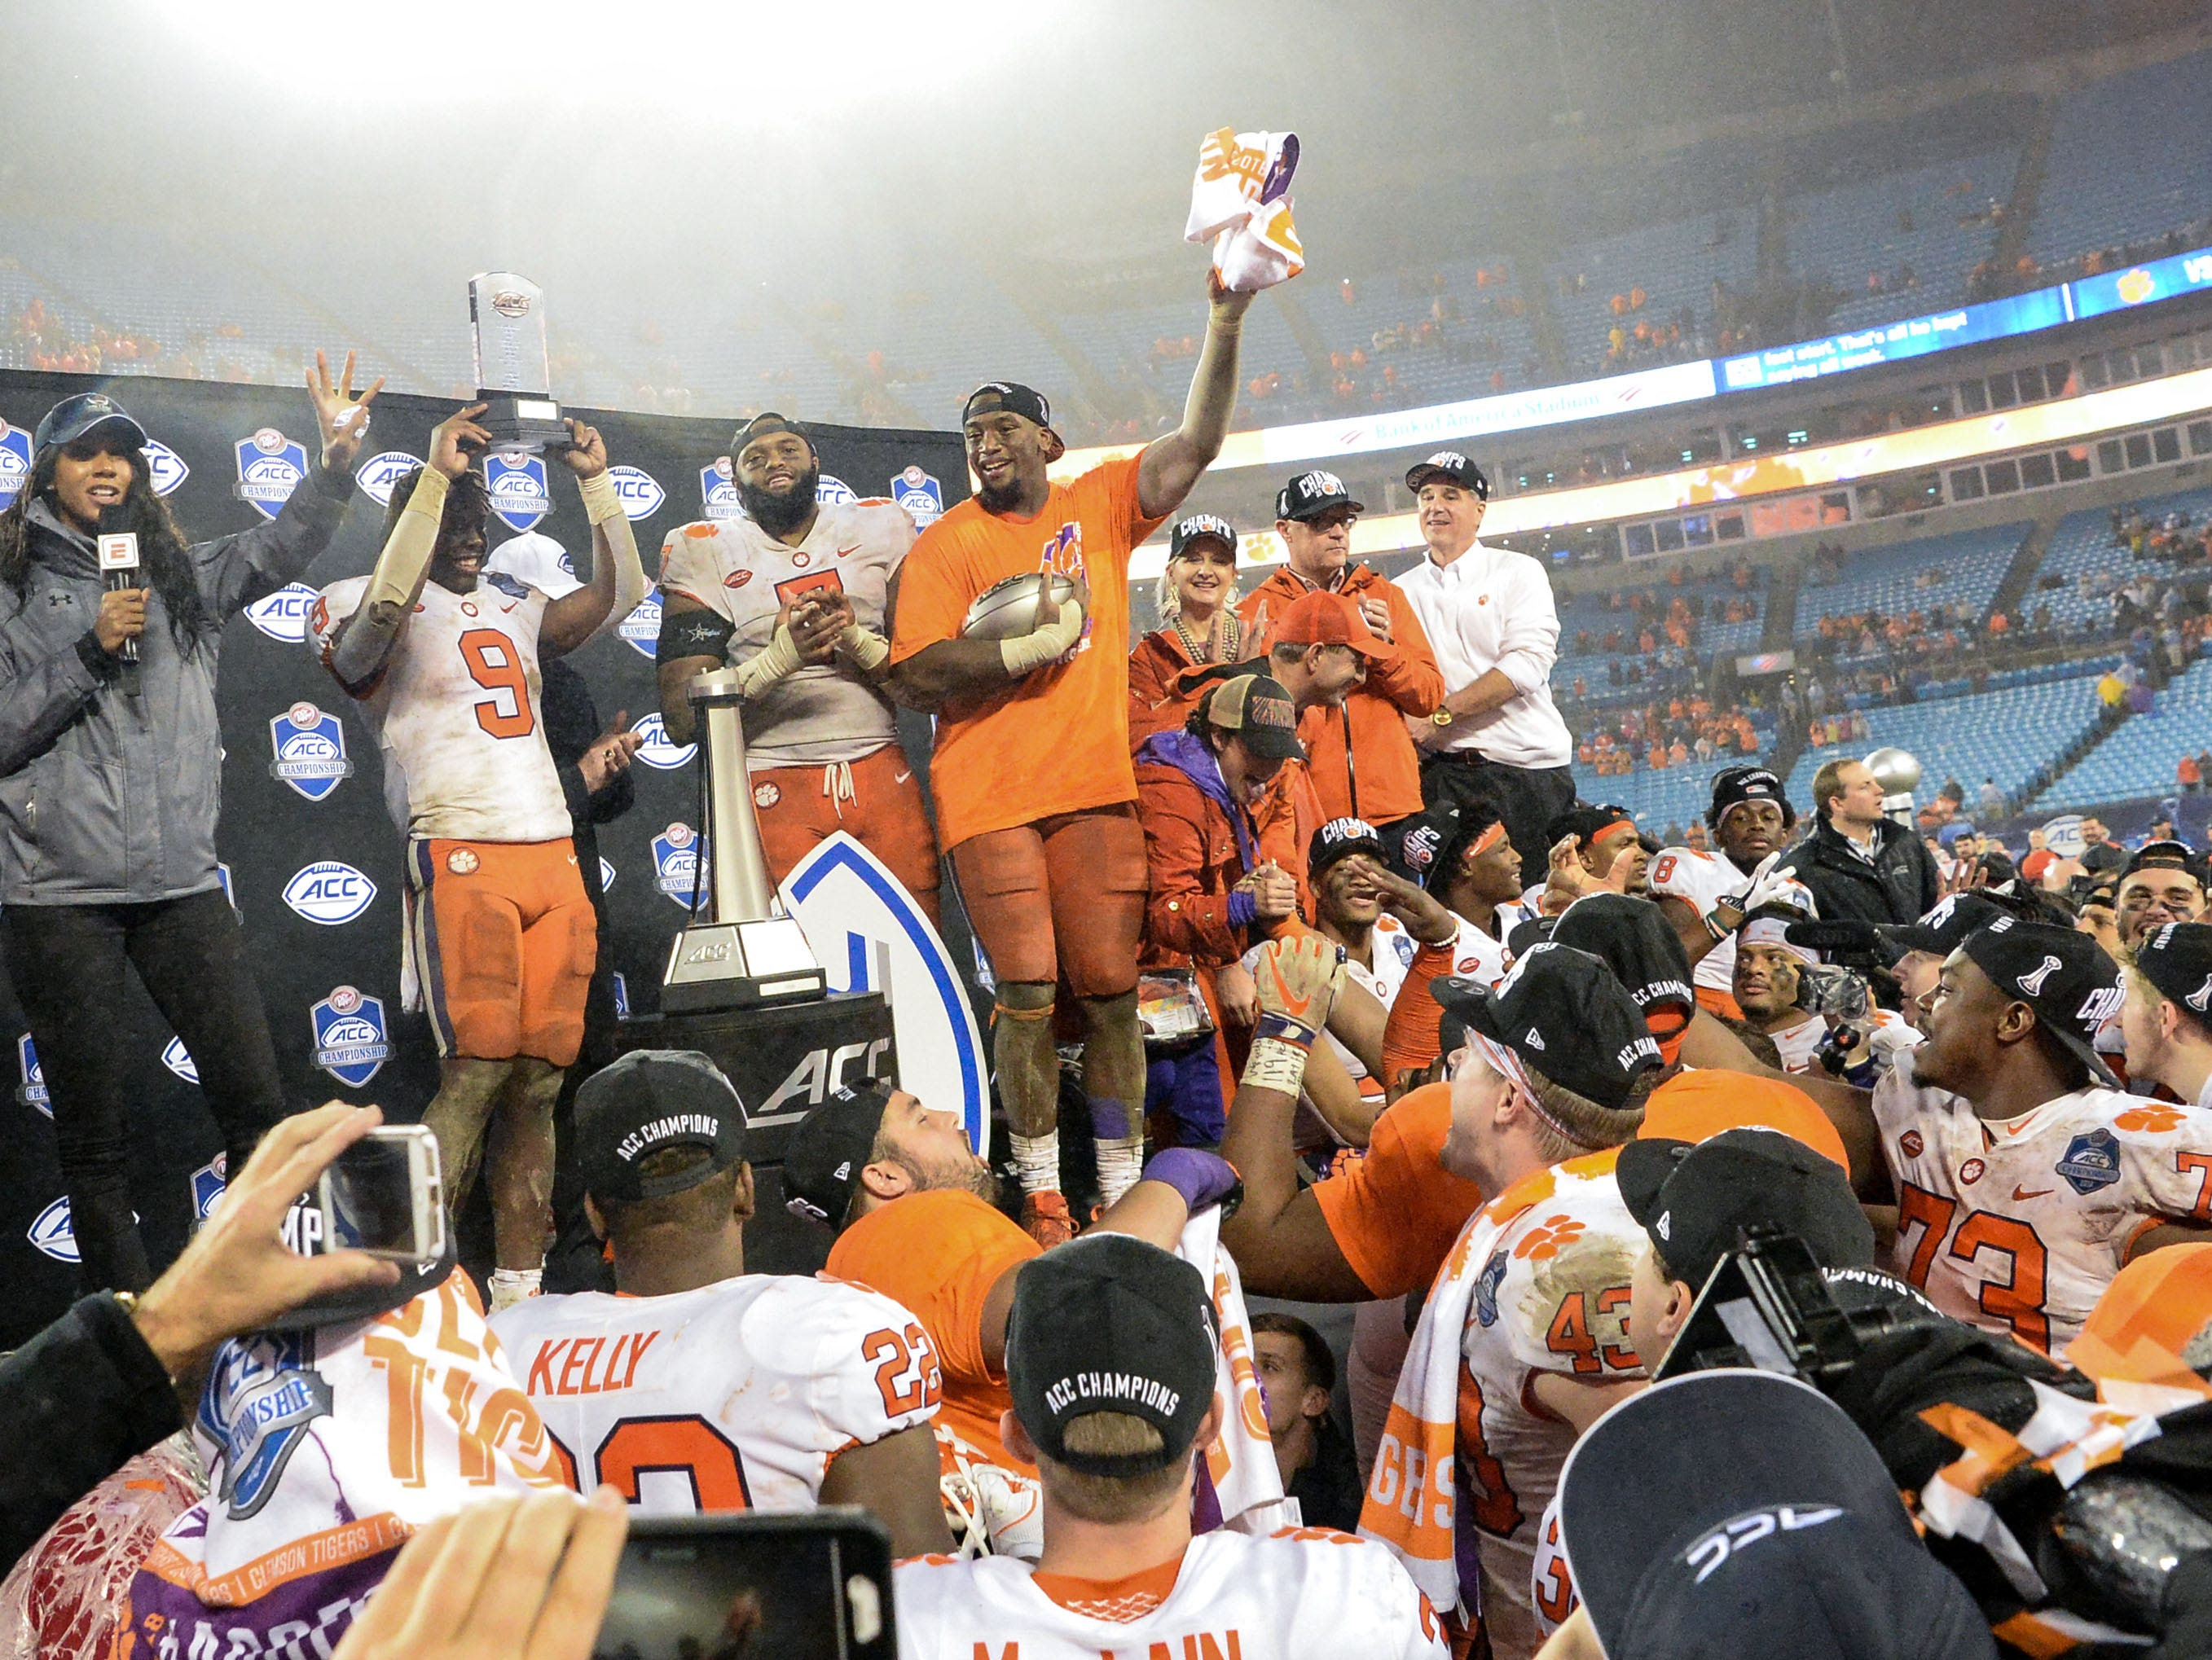 Clemson team and fans celebrate a 42-10 win over Pittsburgh after the game at the Dr. Pepper ACC football championship at Bank of America Stadium in Charlotte, N.C. on Saturday, December 1, 2018. Clemson running back Travis Etienne (9) holds up the MVP award.